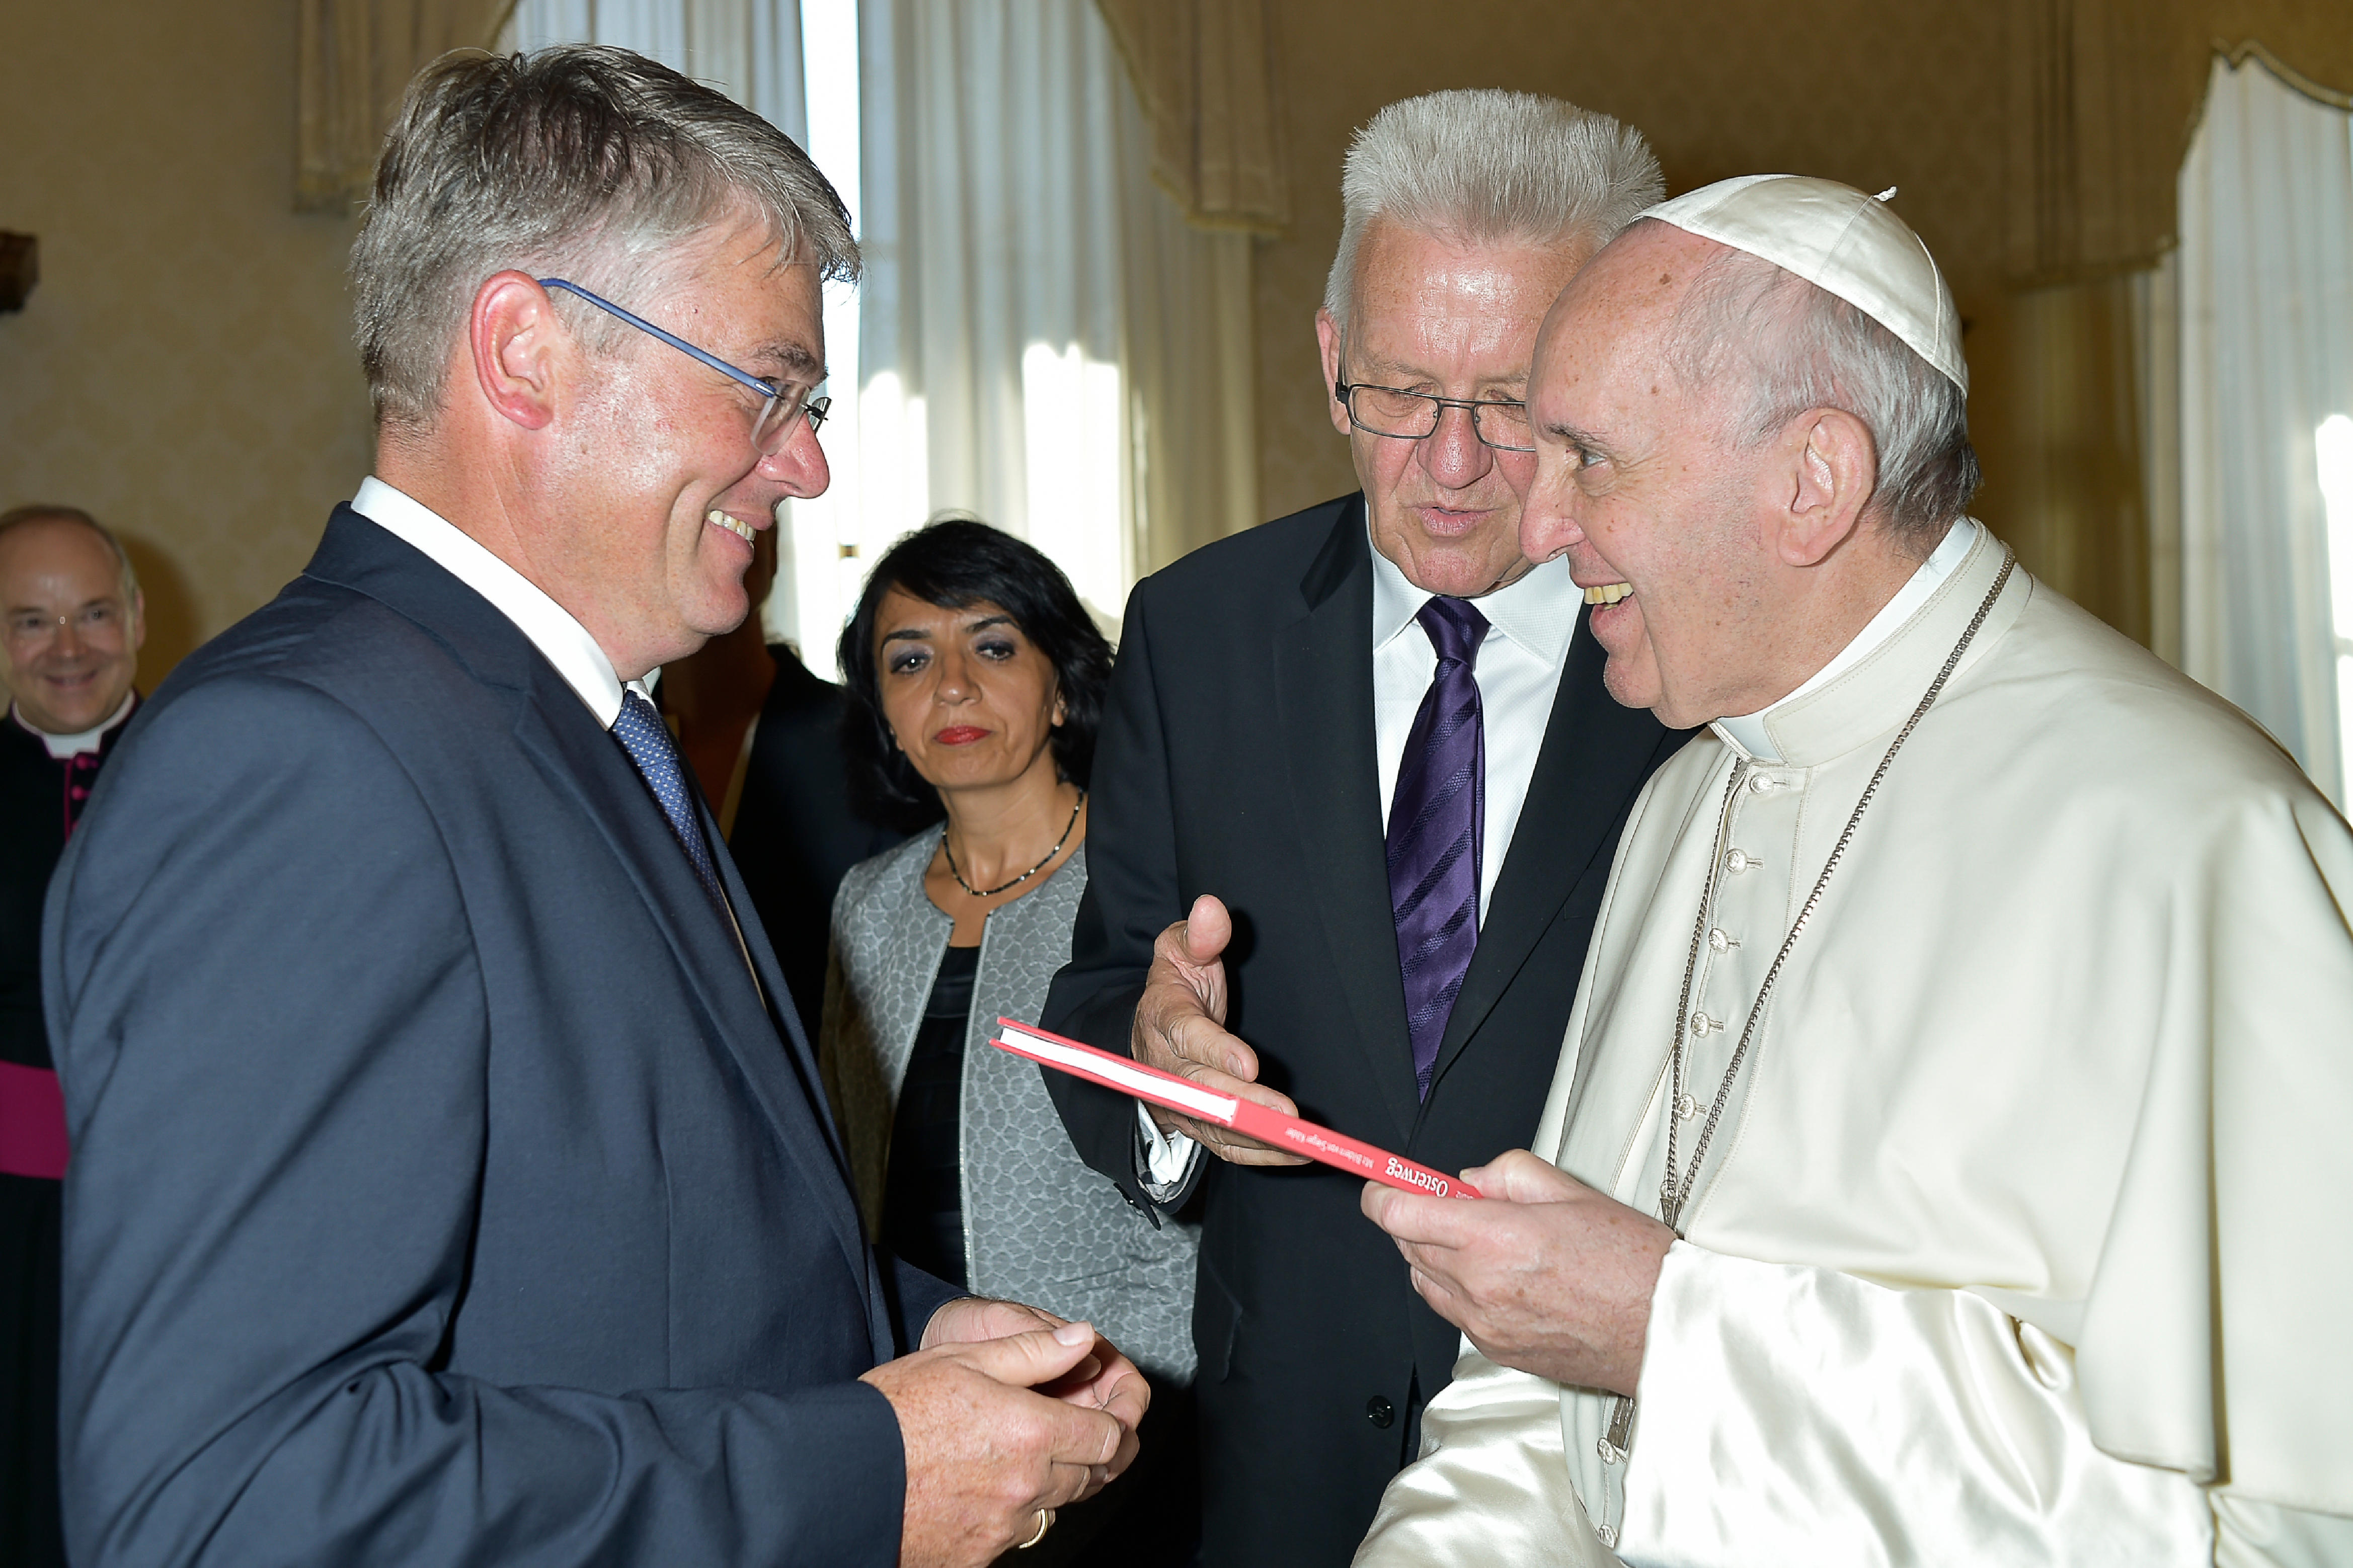 Winfried Mack MdL mit Papst Franziskus am 2. September 2016 in Rom